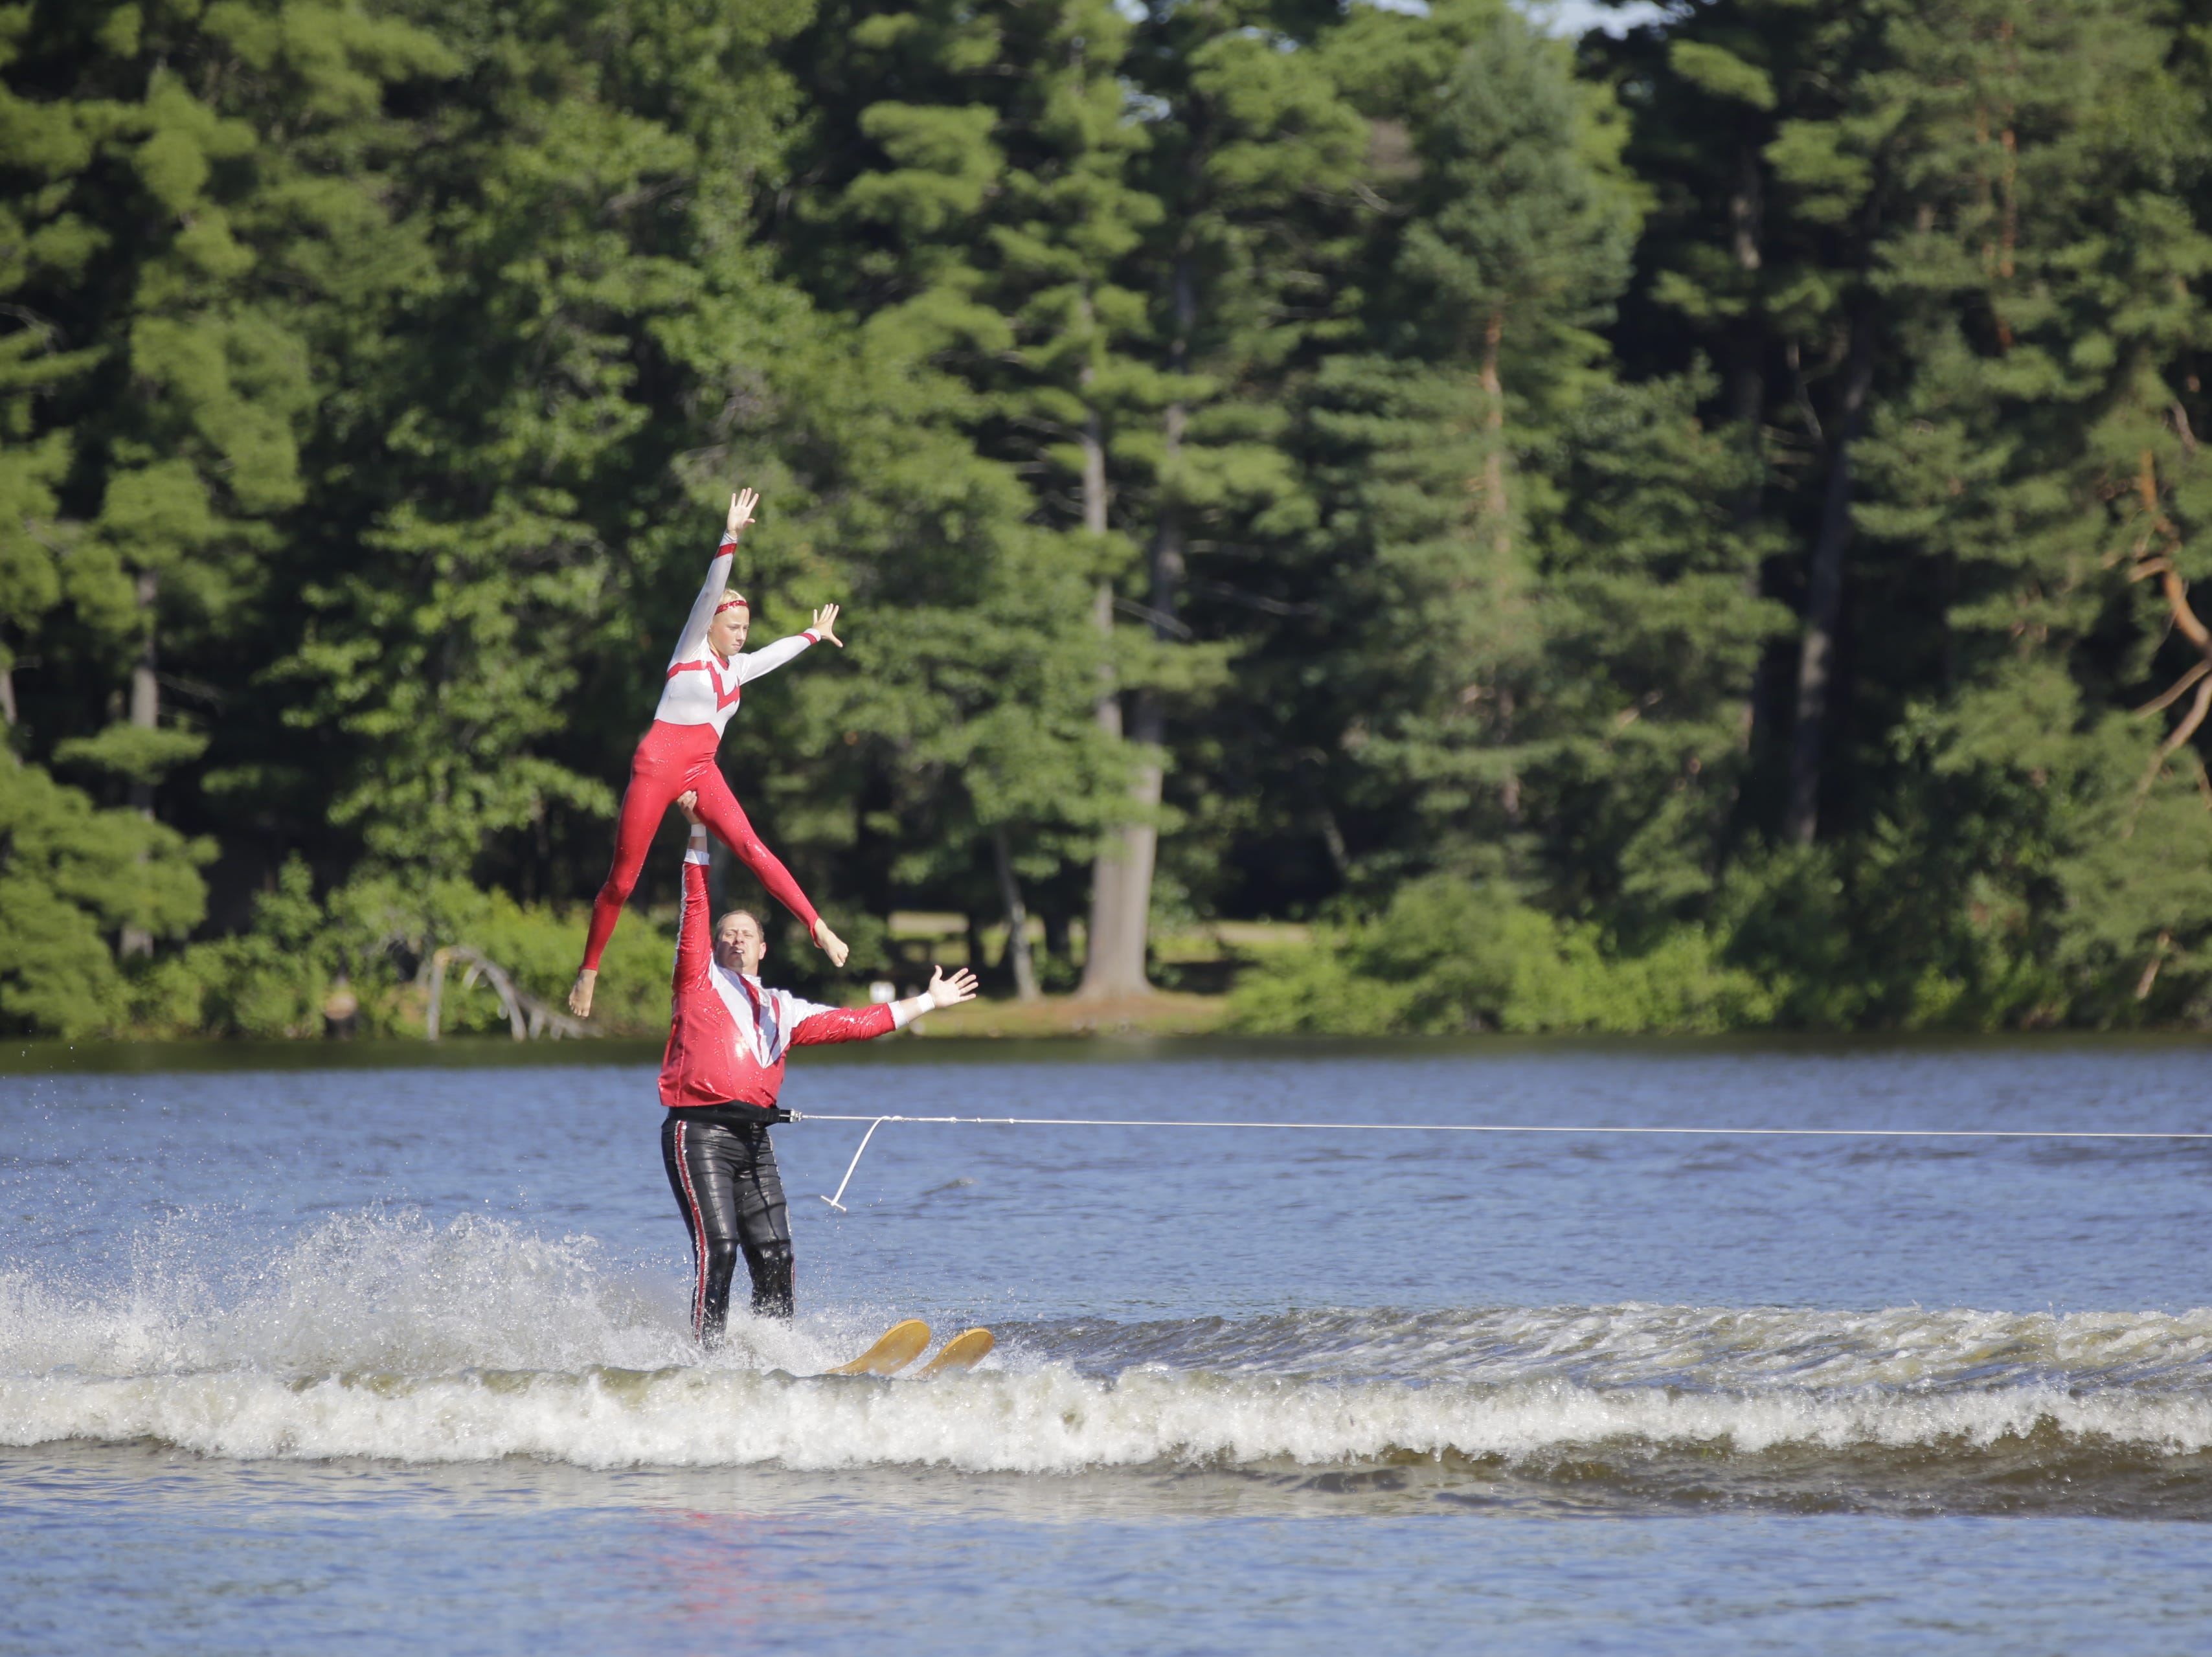 Jon and Lindsay Jossie compete in the doubles category during the Wisconsin State Water Ski Show Championships on Lake Wazeecha in Kellner Thursday, July 19, 2018.